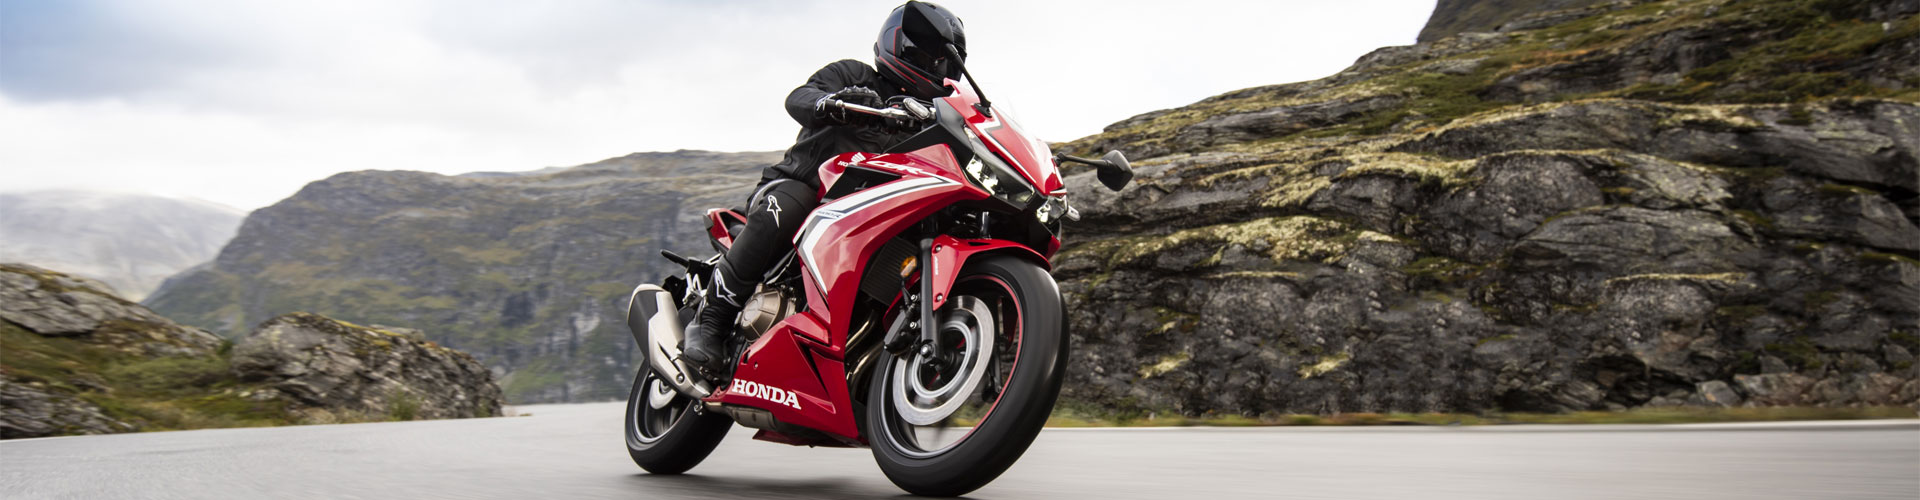 Book a Test Ride - new and used motorcycles